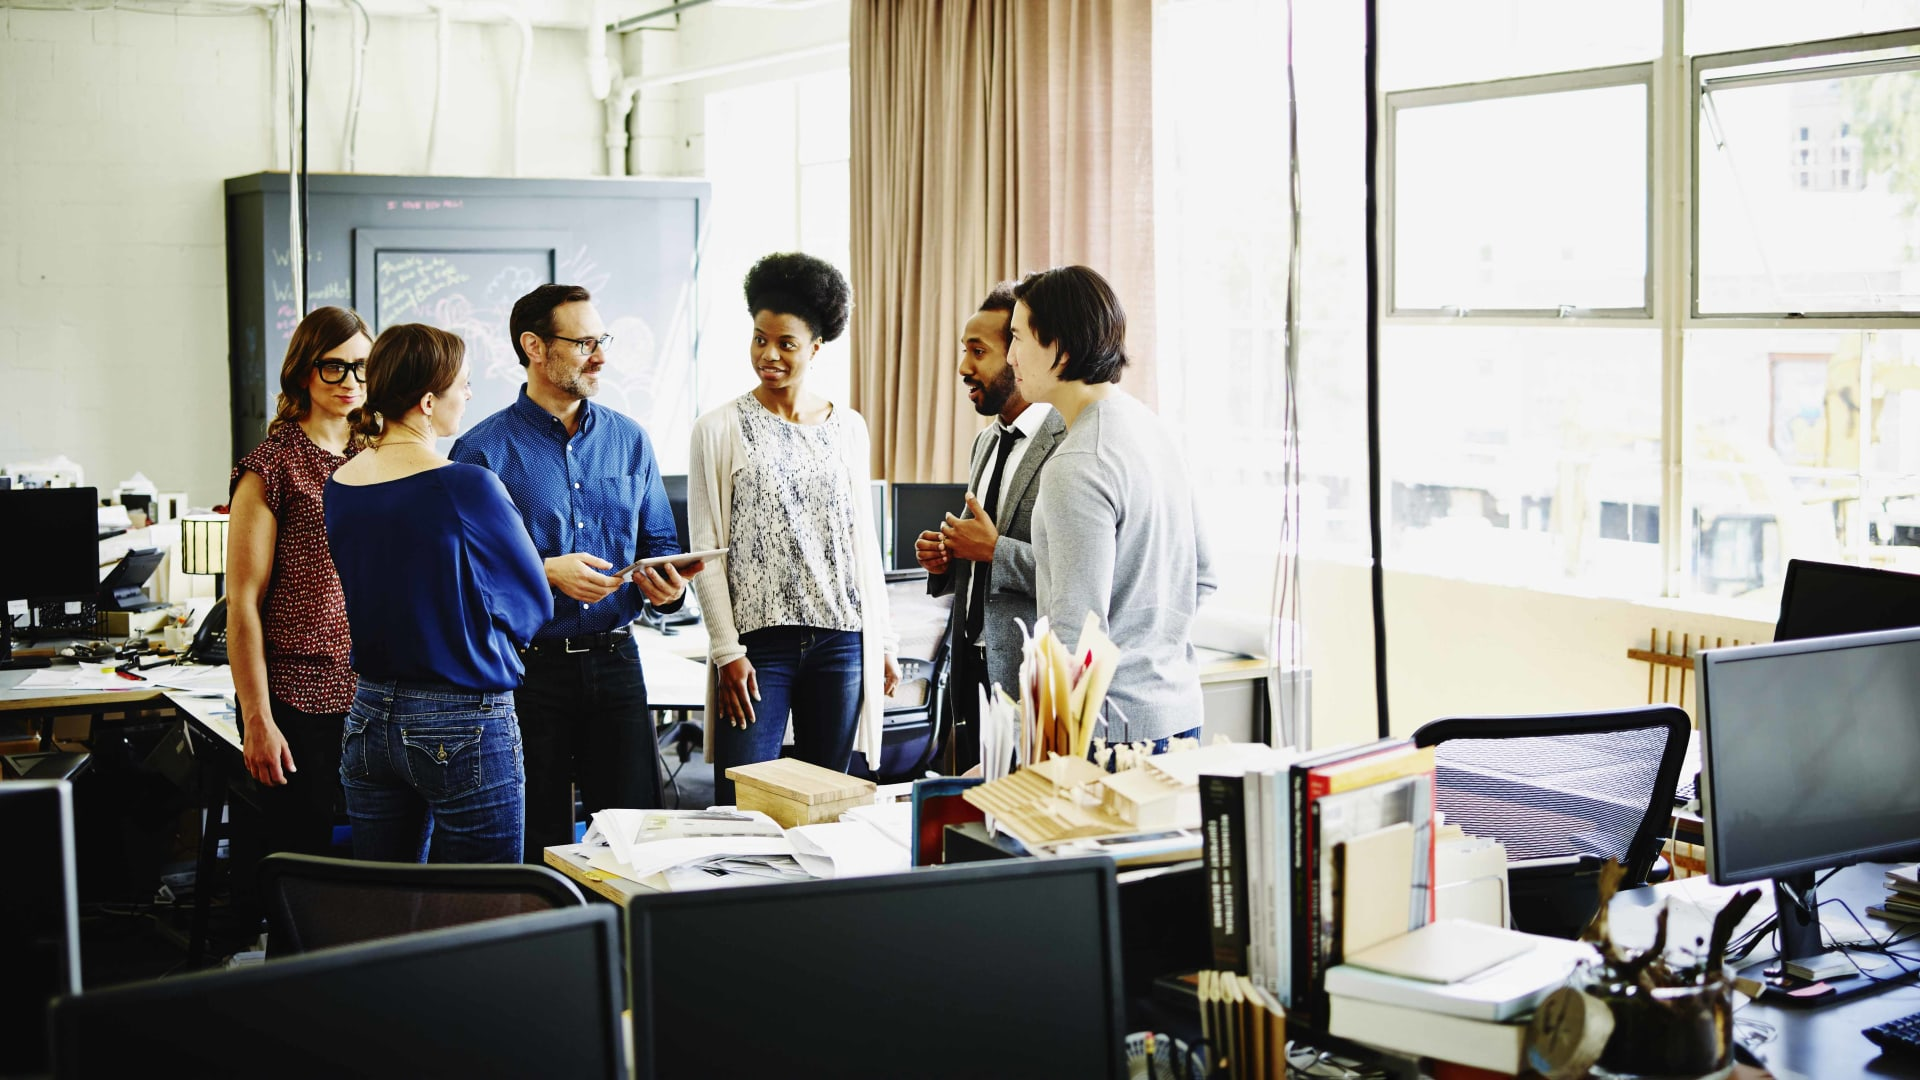 How Leaders Can Reimagine a More Inclusive Workplace After Covid-19